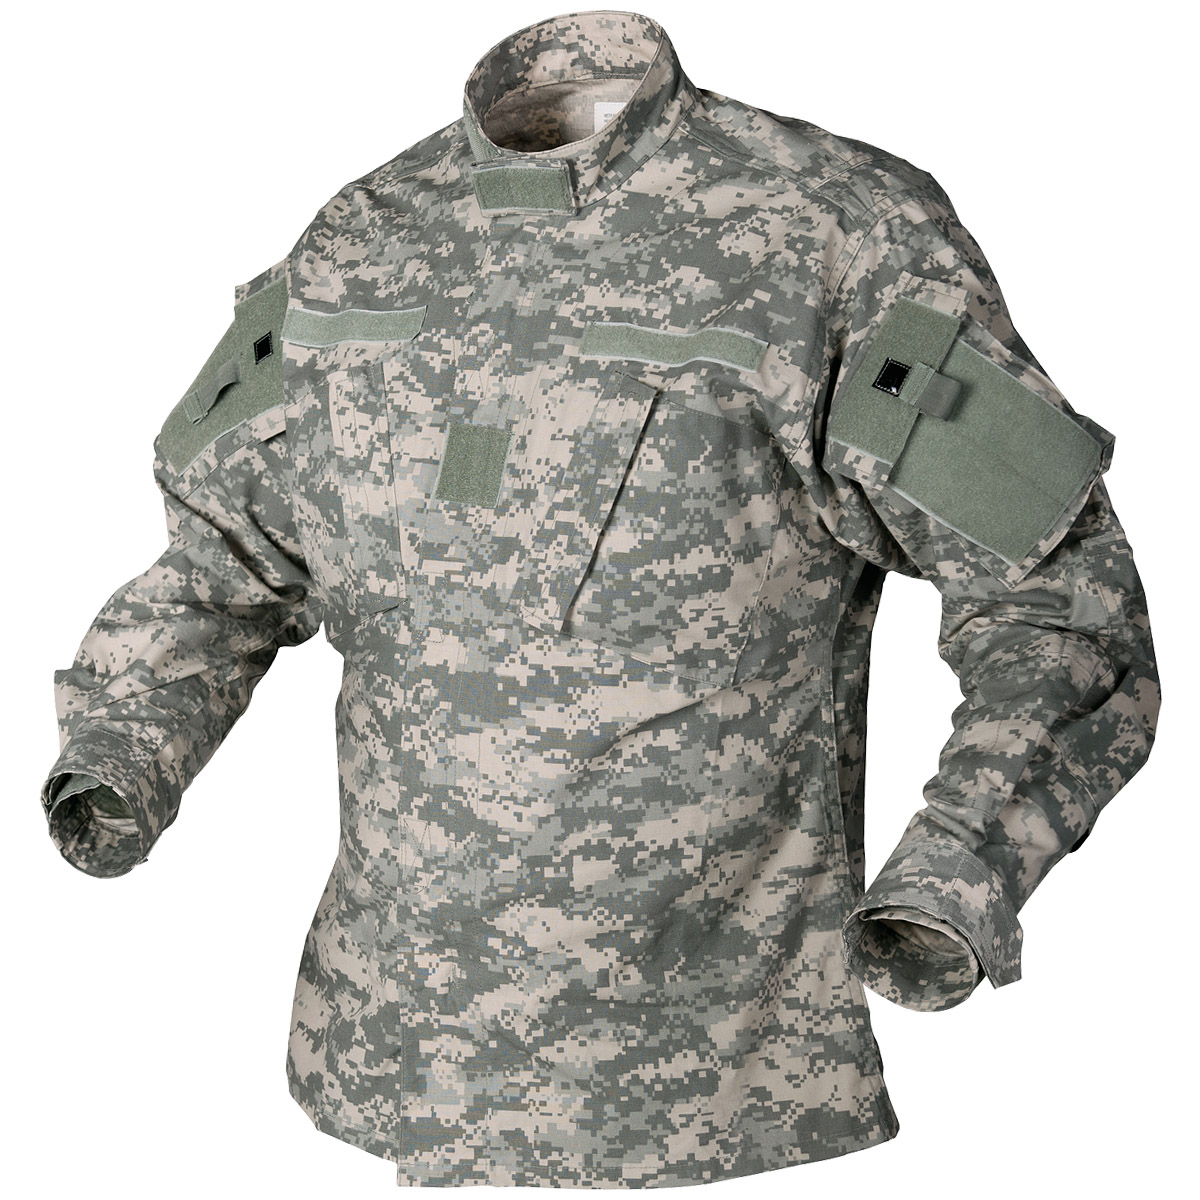 Army Digital Camo Jerseys Army Digital Camo Jerseys